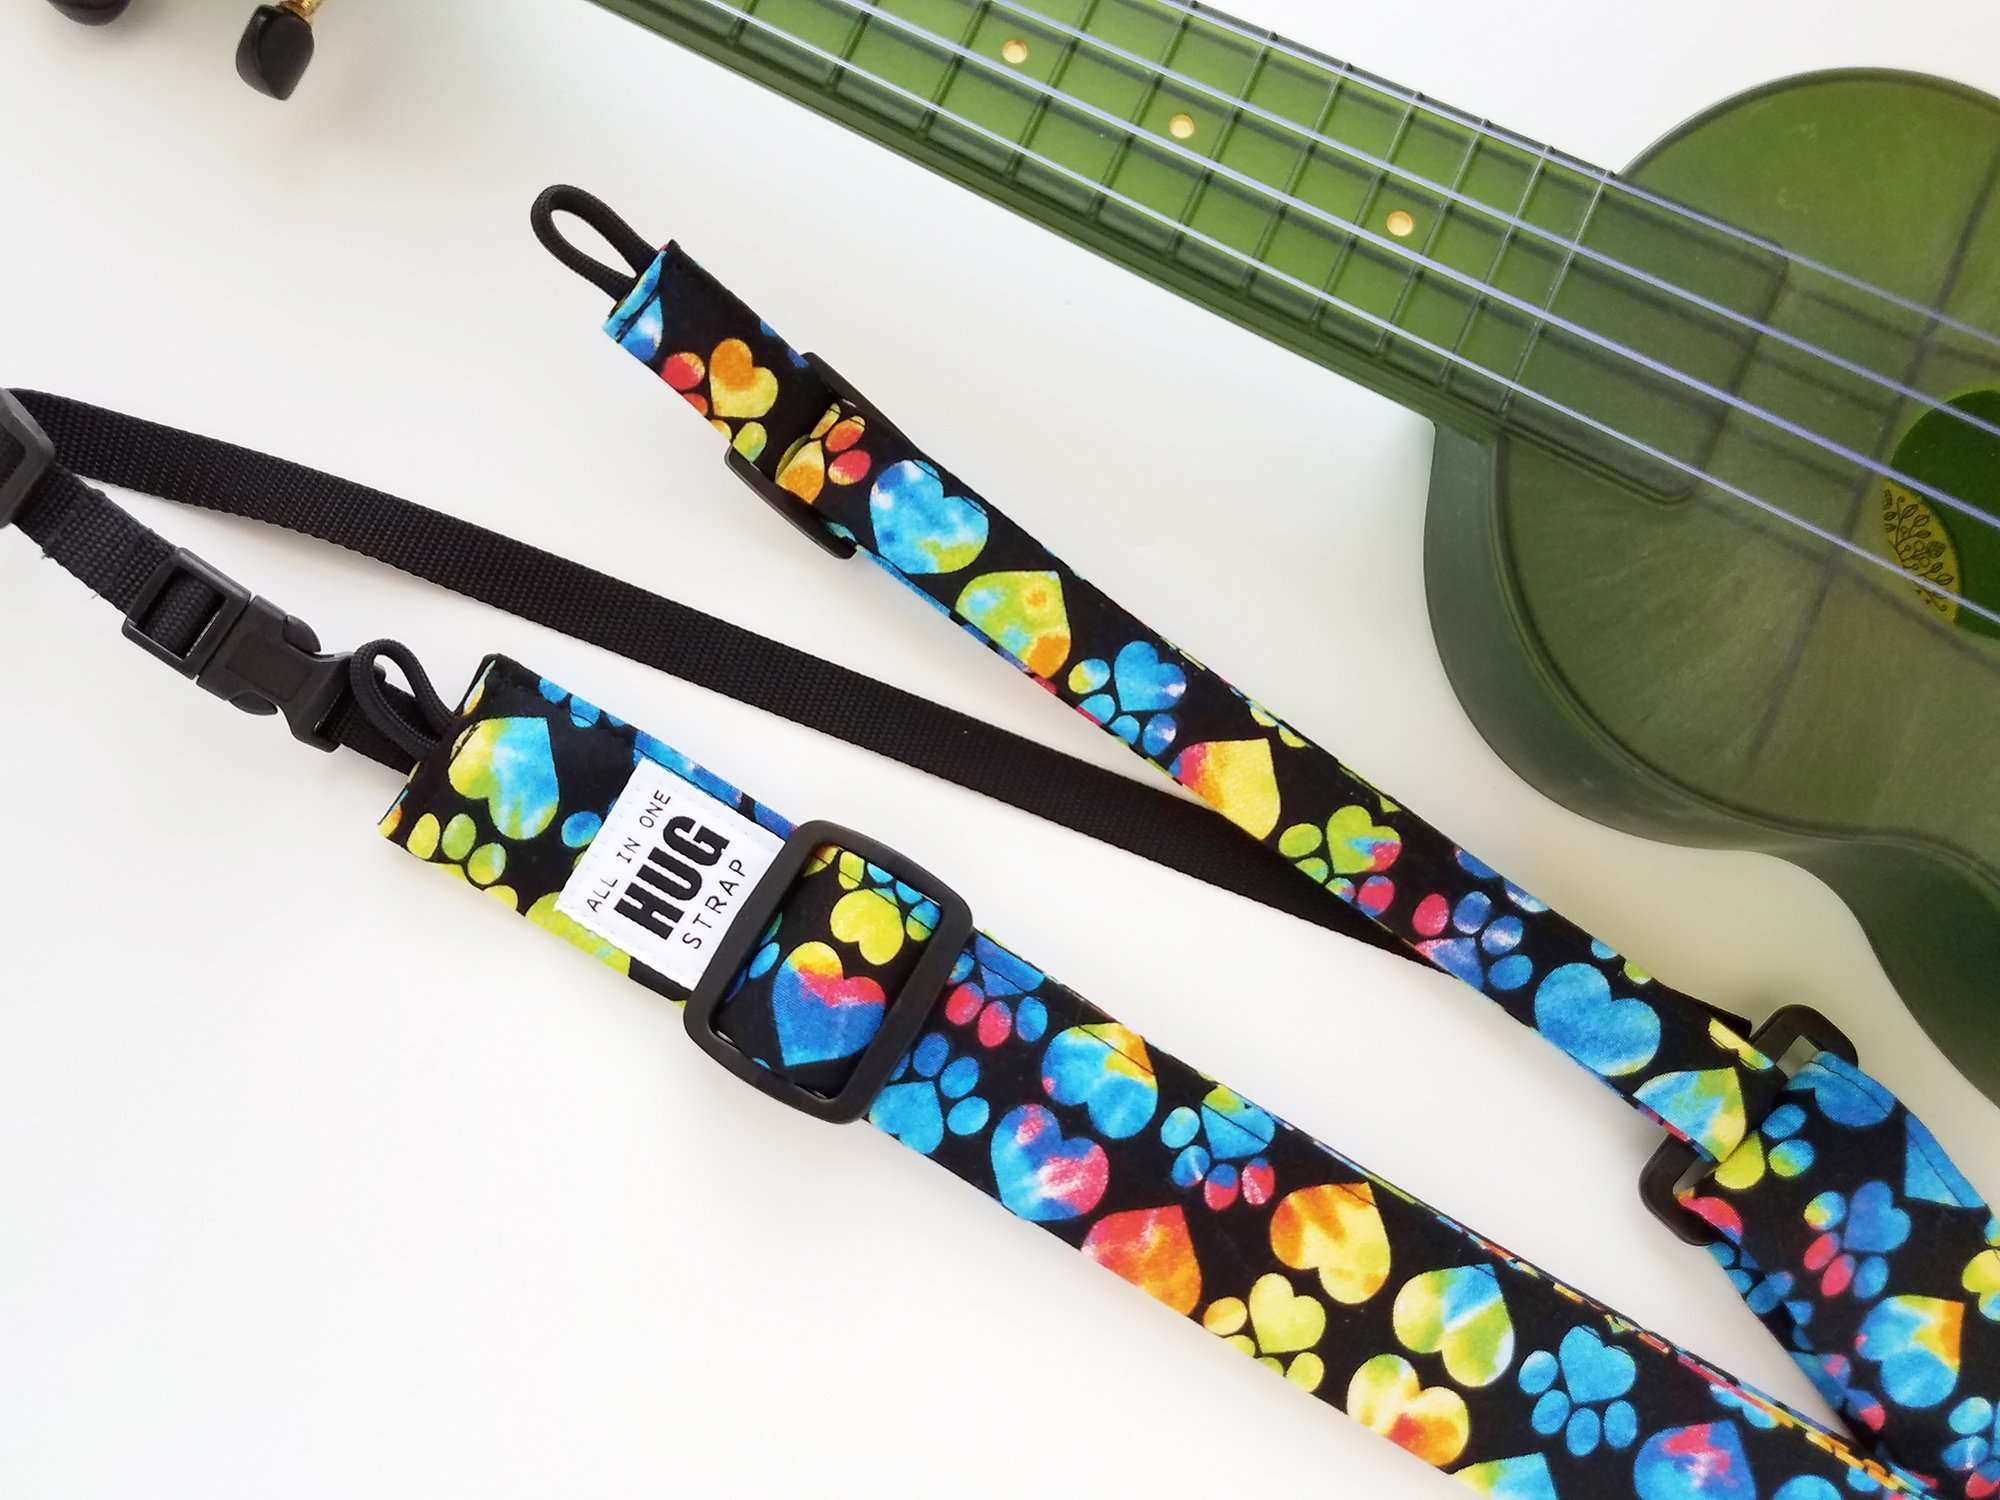 Ukulele Strap ALL in ONE Hug - Tie Dye Paw Prints and Hearts